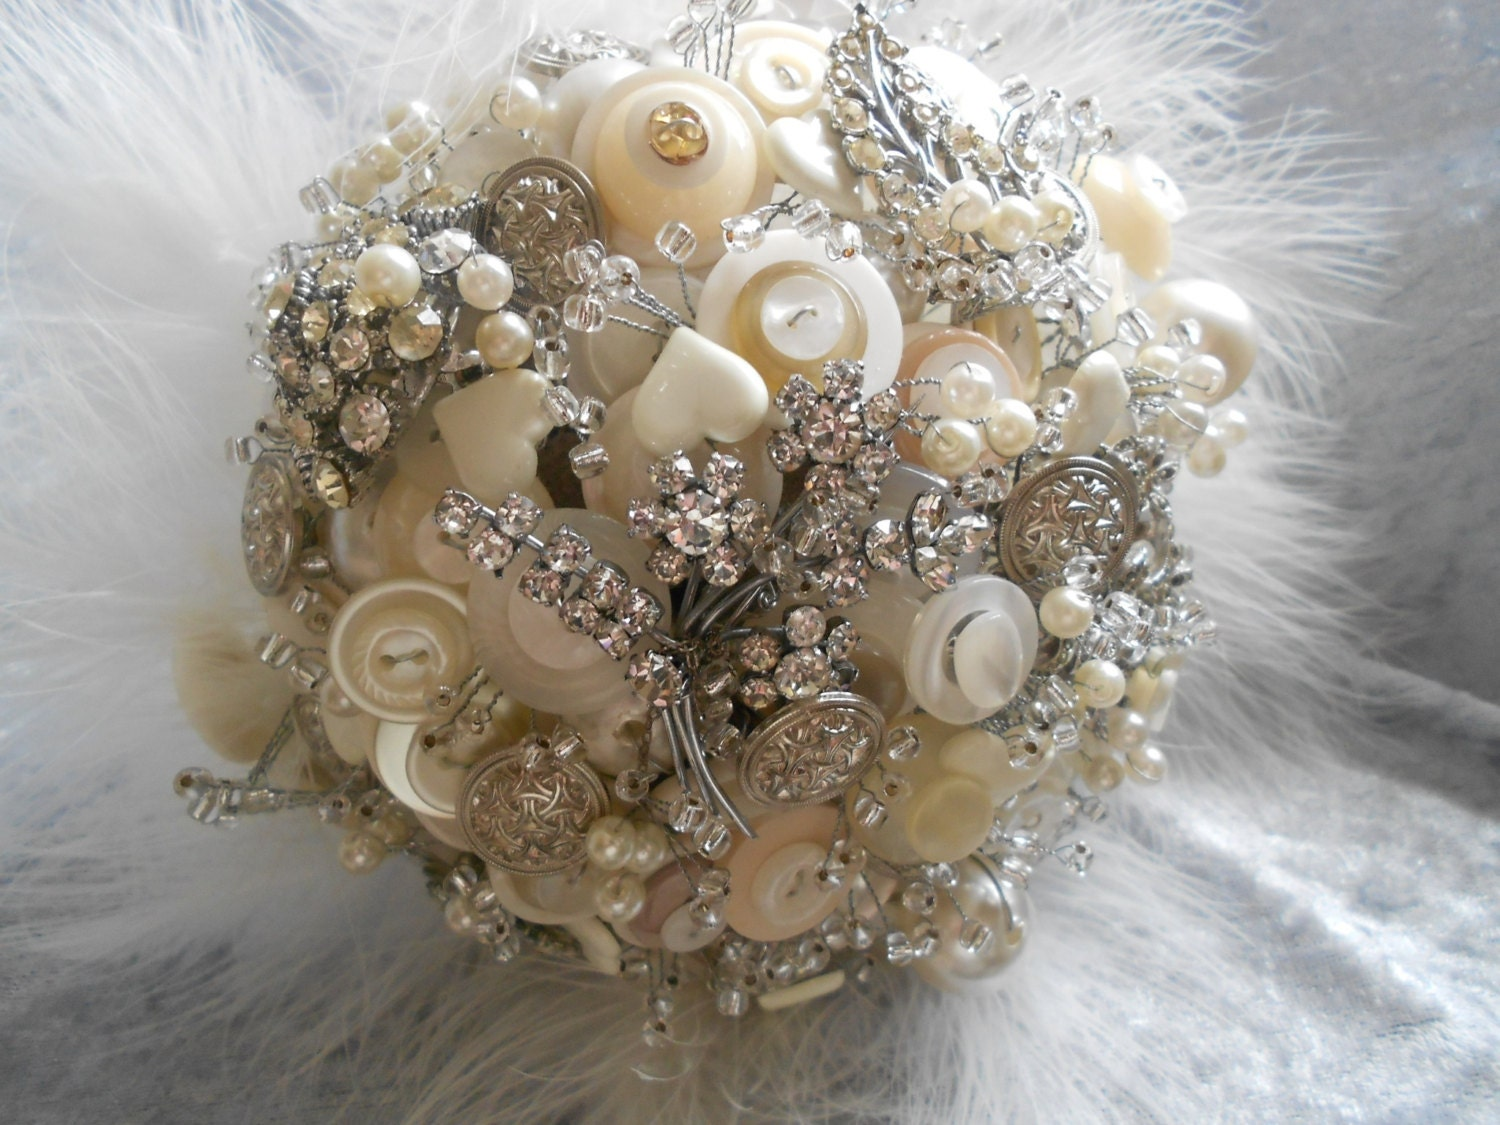 Button Bridal Bouquet Etsy : Vintage brooch and button bouquet by daisybluebuttons on etsy